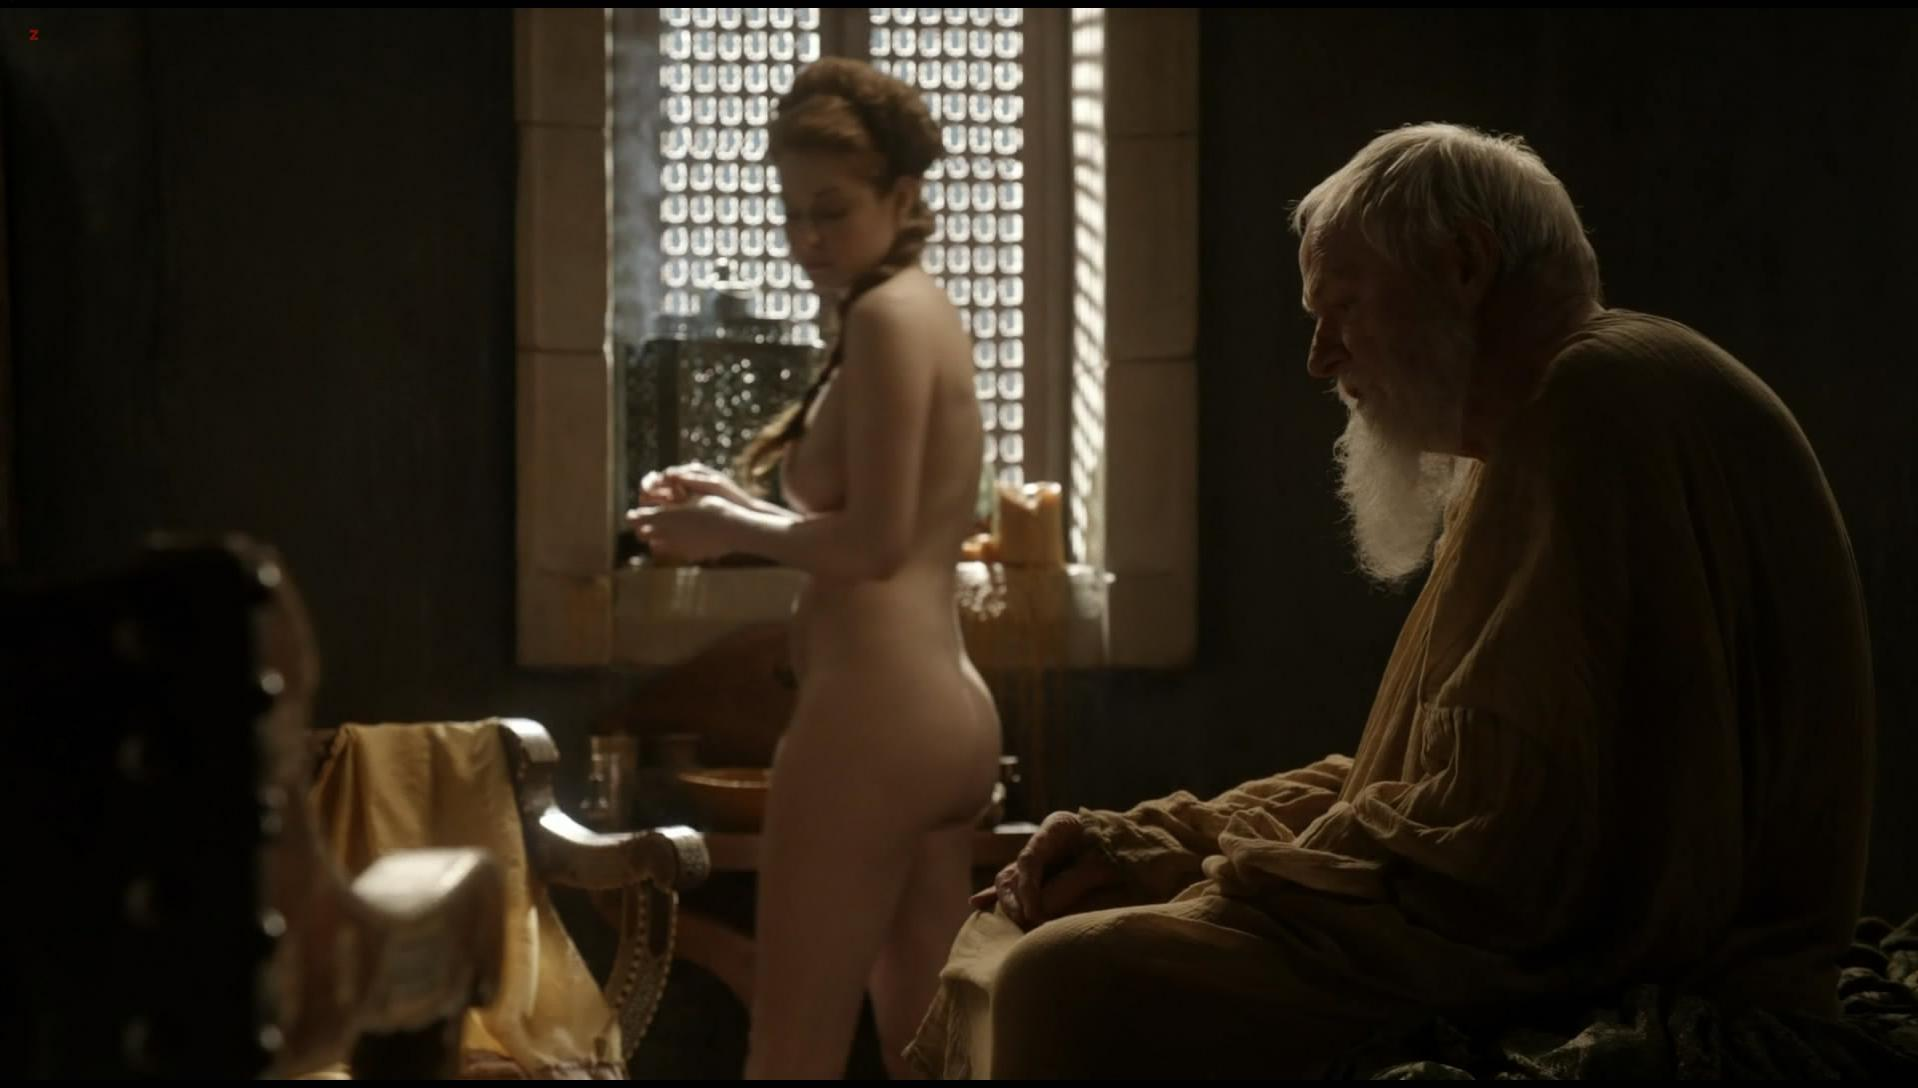 Esme Bianco nude - Game of Thrones s01e10 (2011)